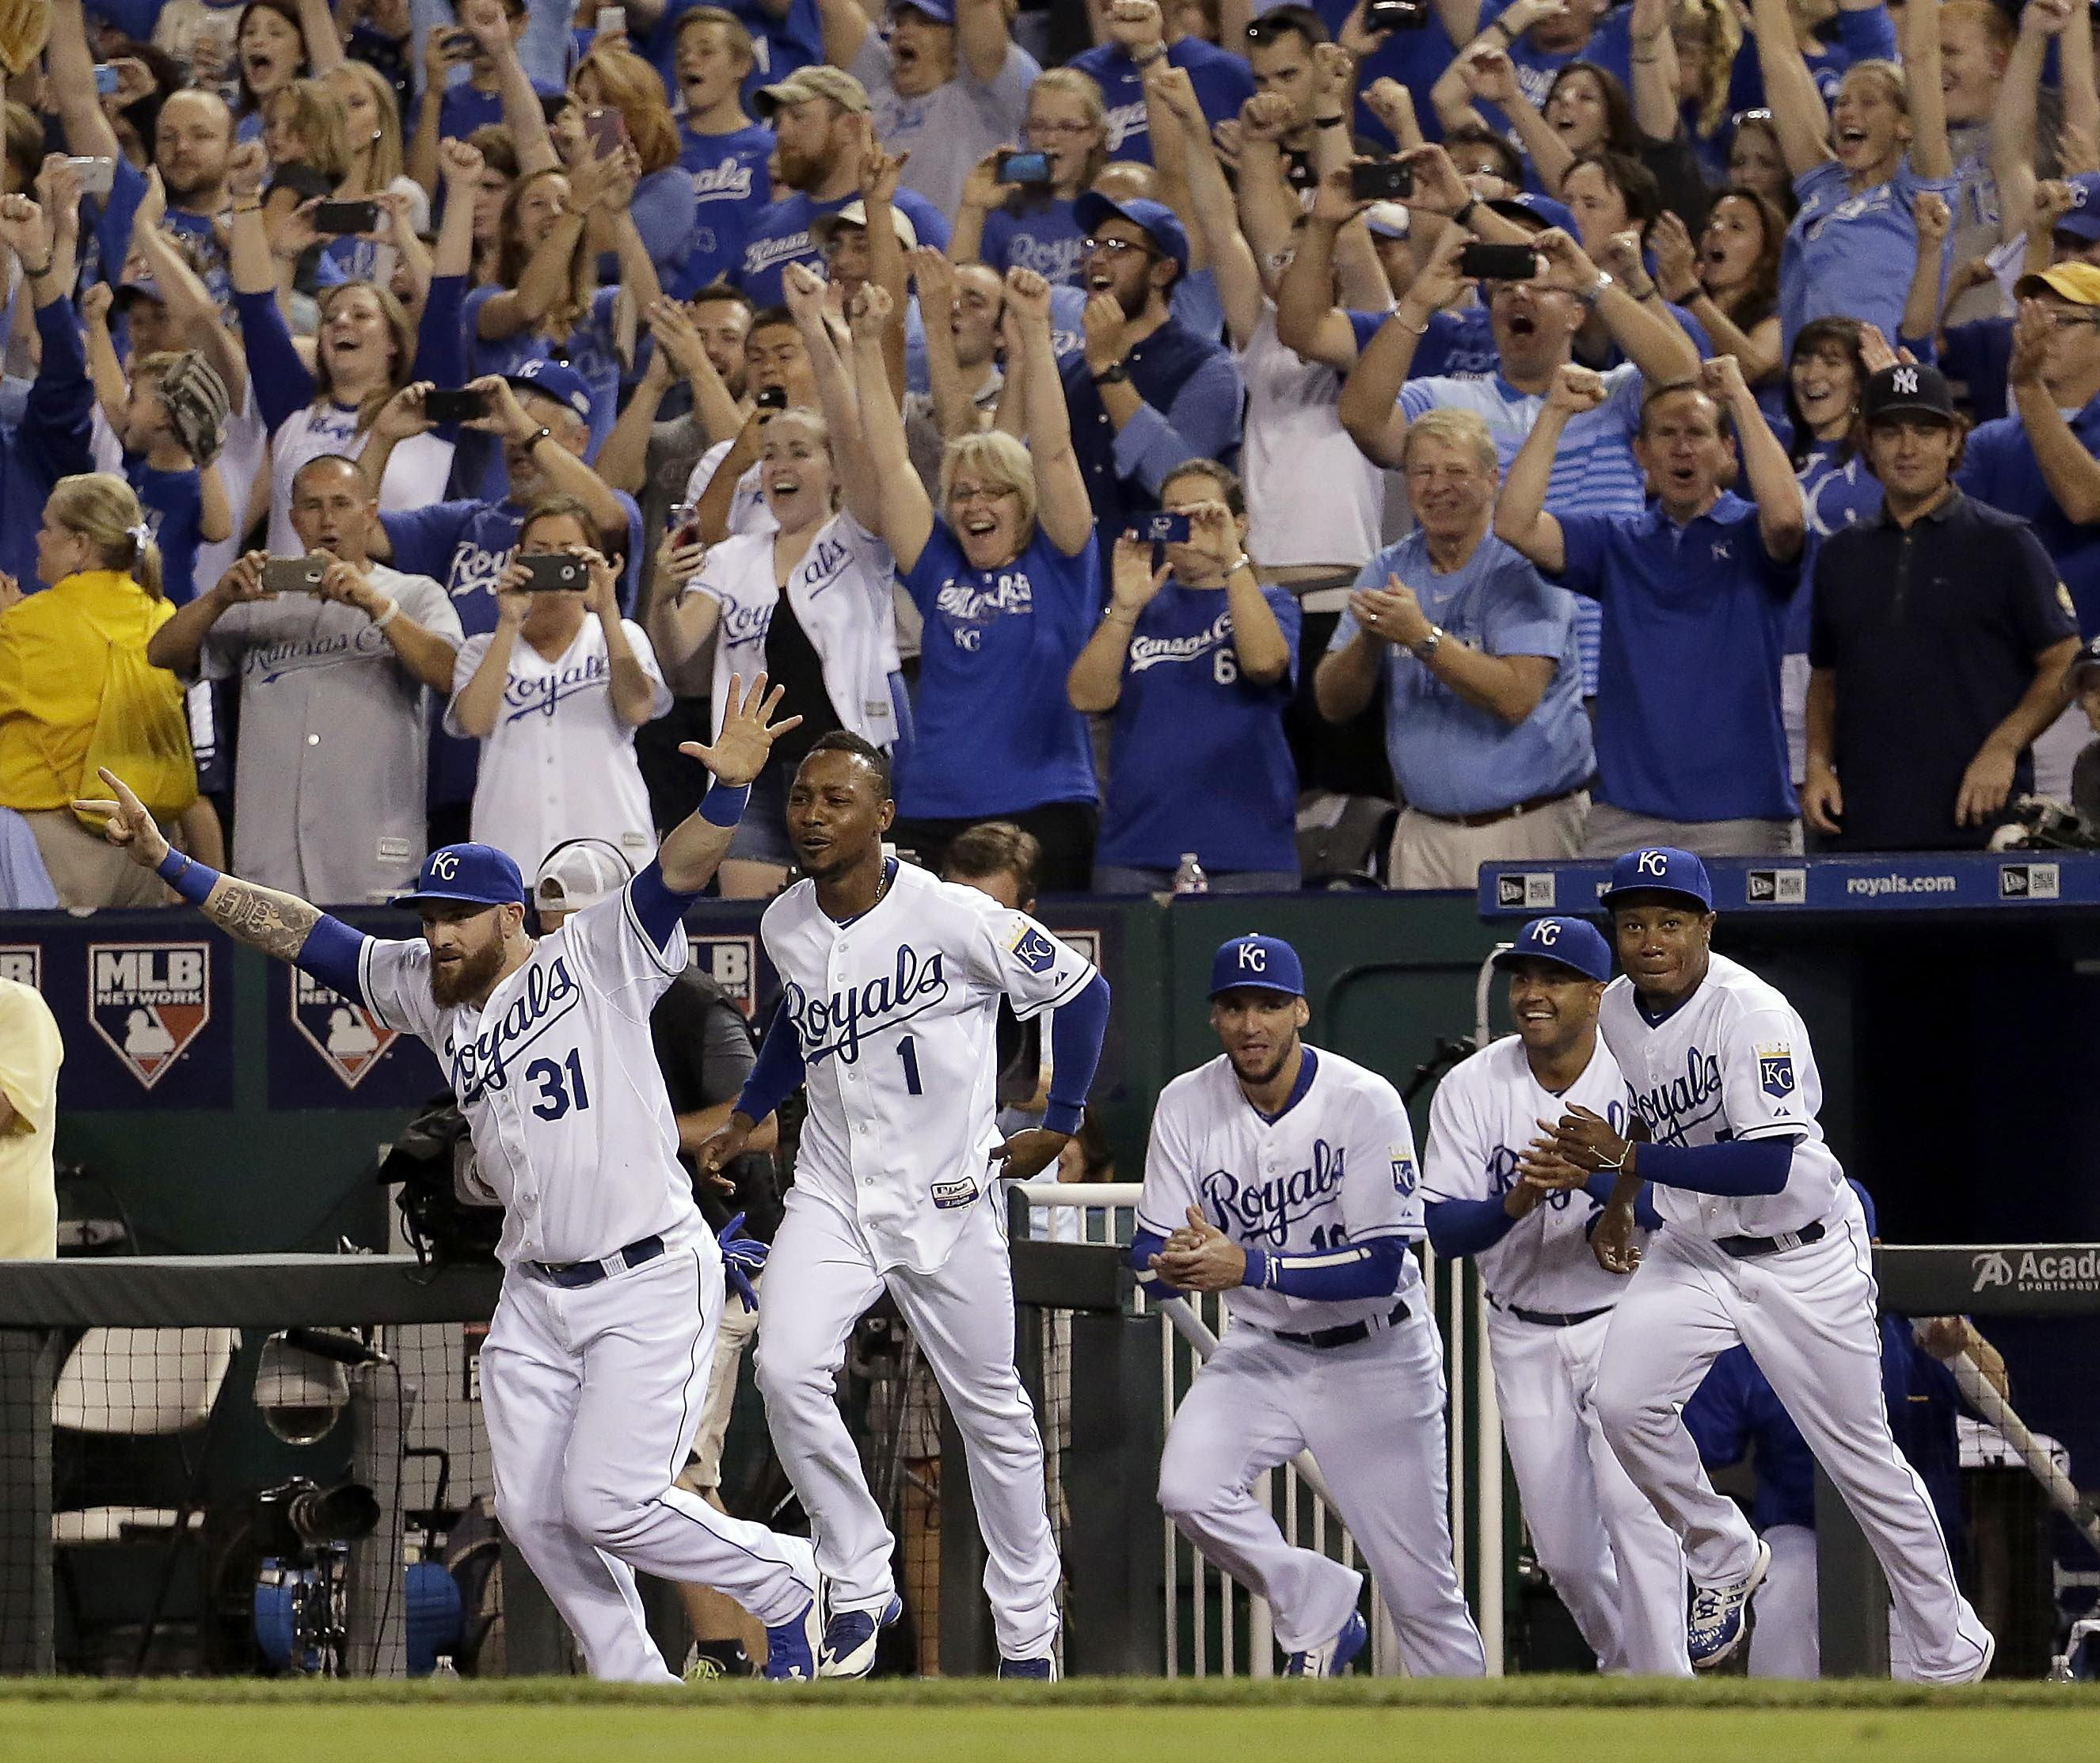 Kansas City Royals players celebrate after a baseball game against the Seattle Mariners on Thursday, Sept. 24, 2015, in Kansas City, Mo. The Royals won 10-4 to clinch the AL Central. (AP Photo/Charlie Riedel)